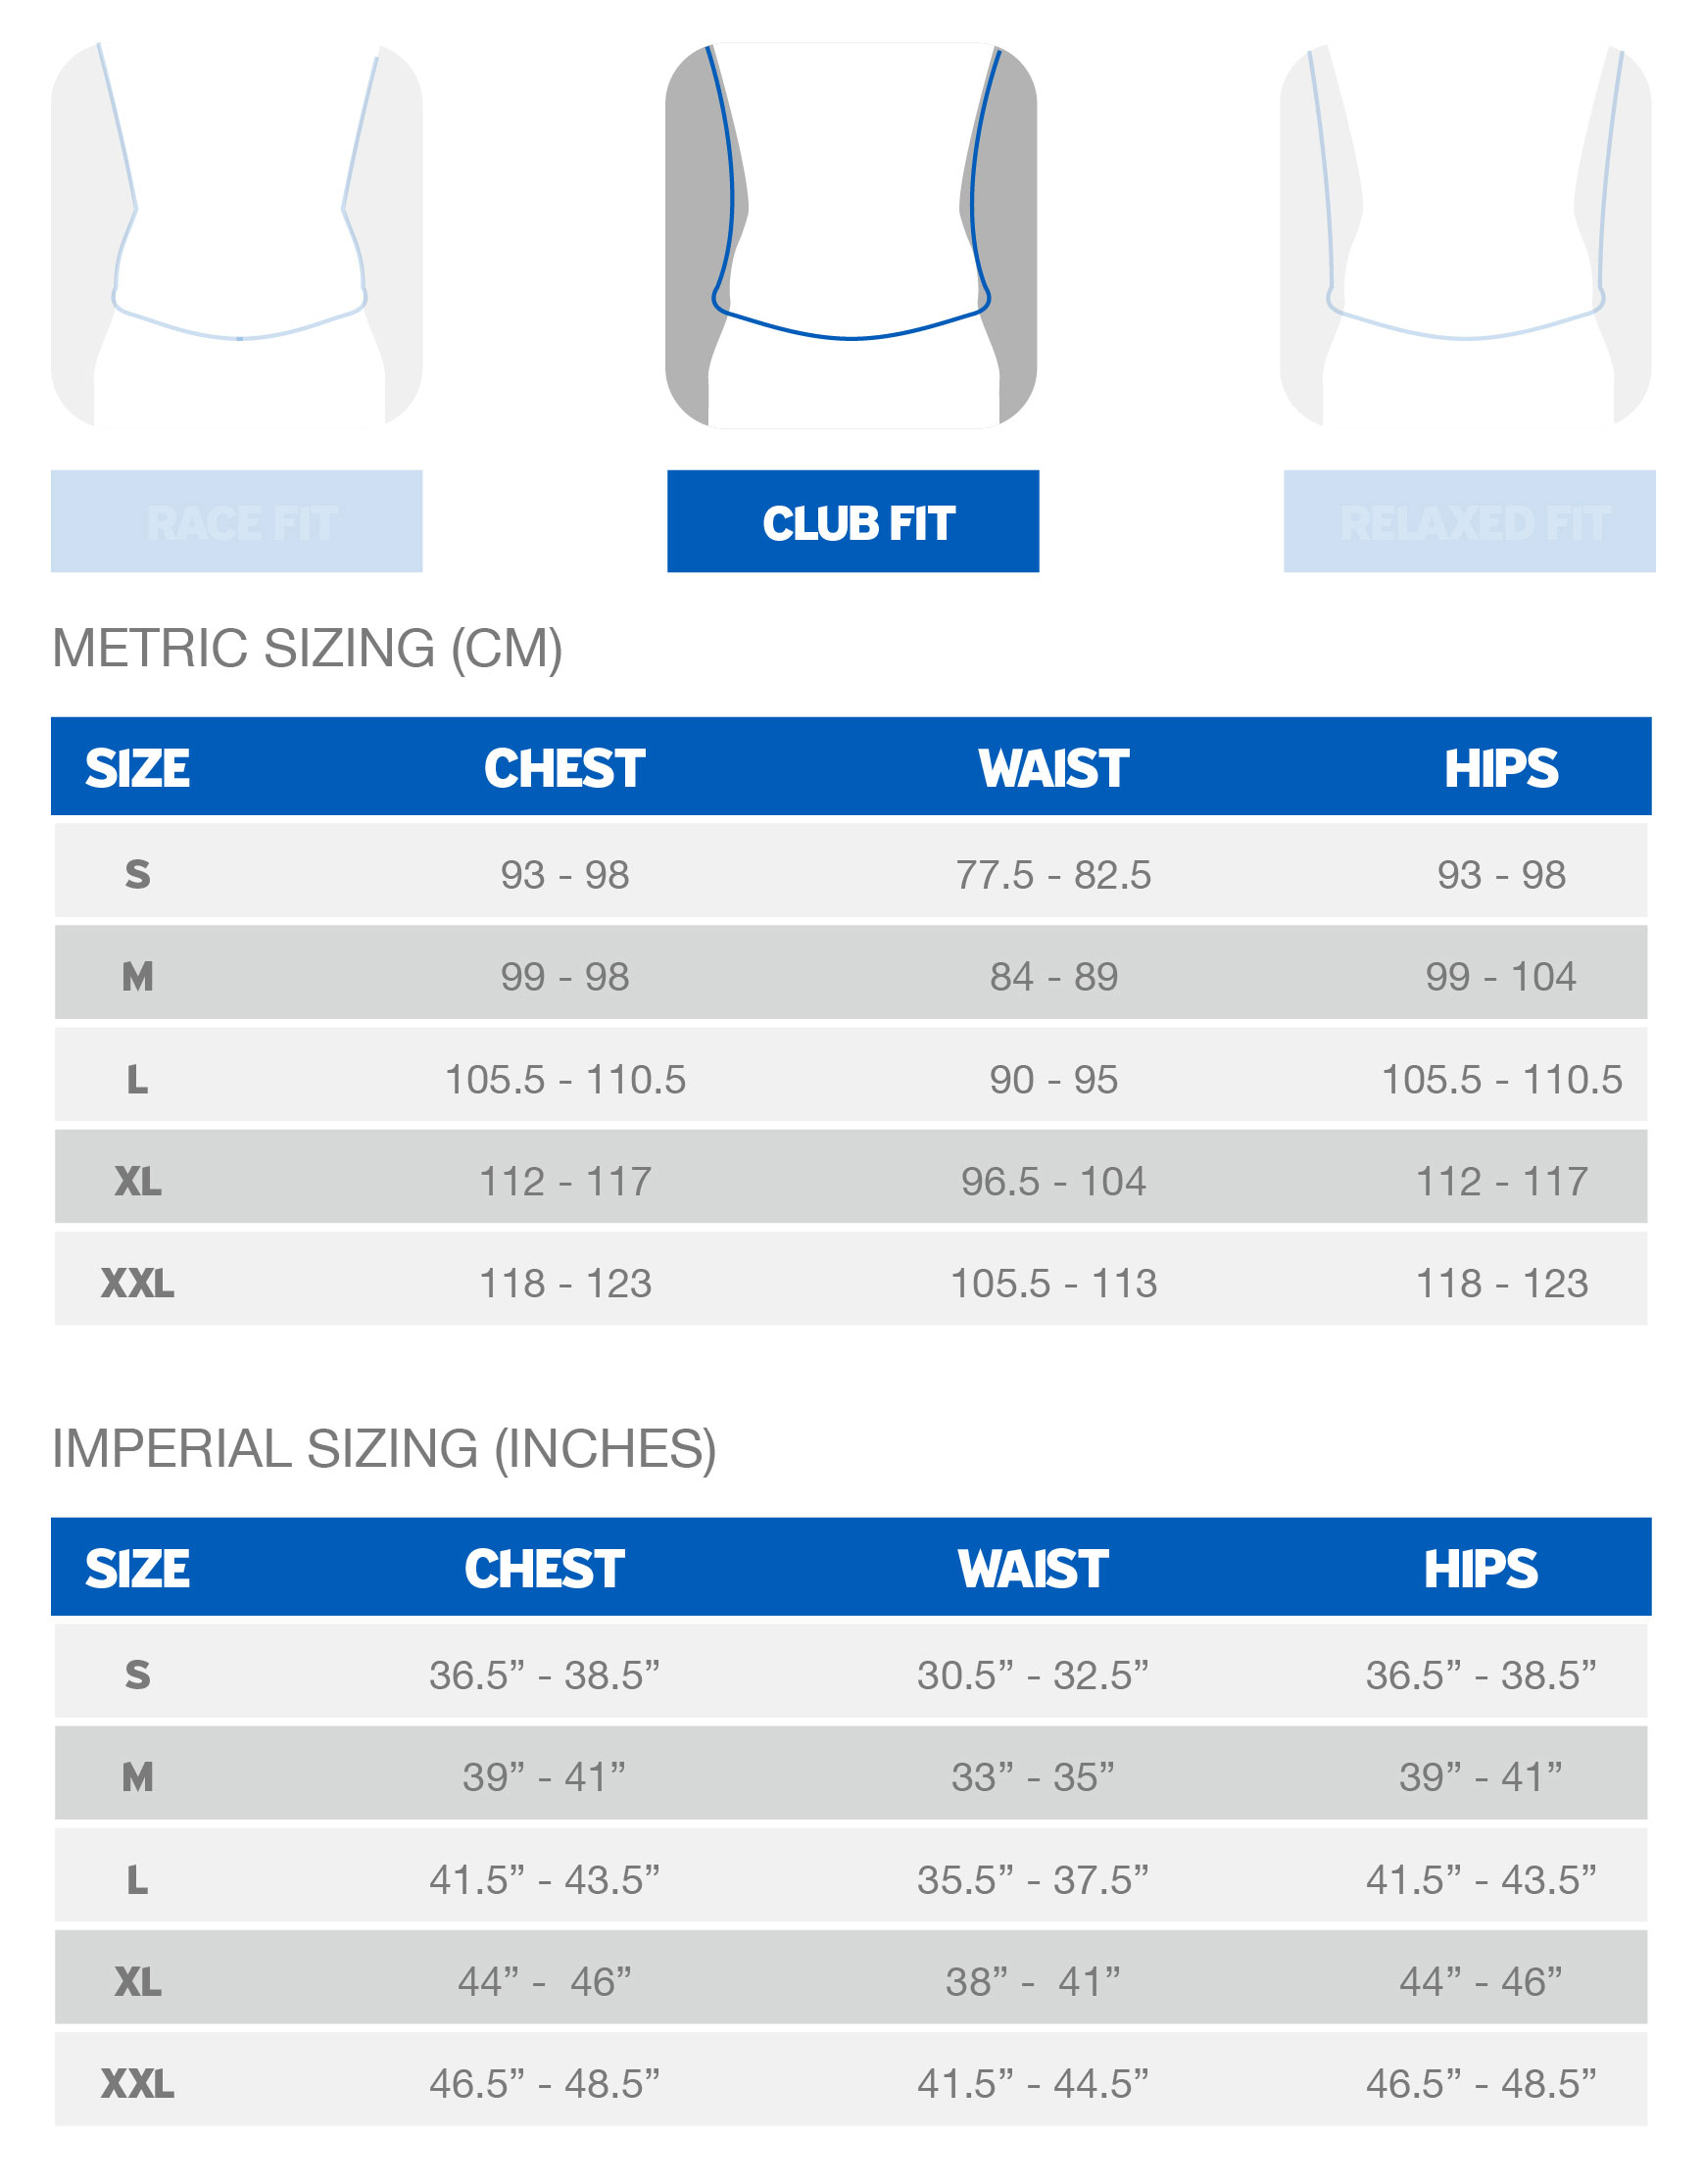 Giant Men's Club Fit sizing chart